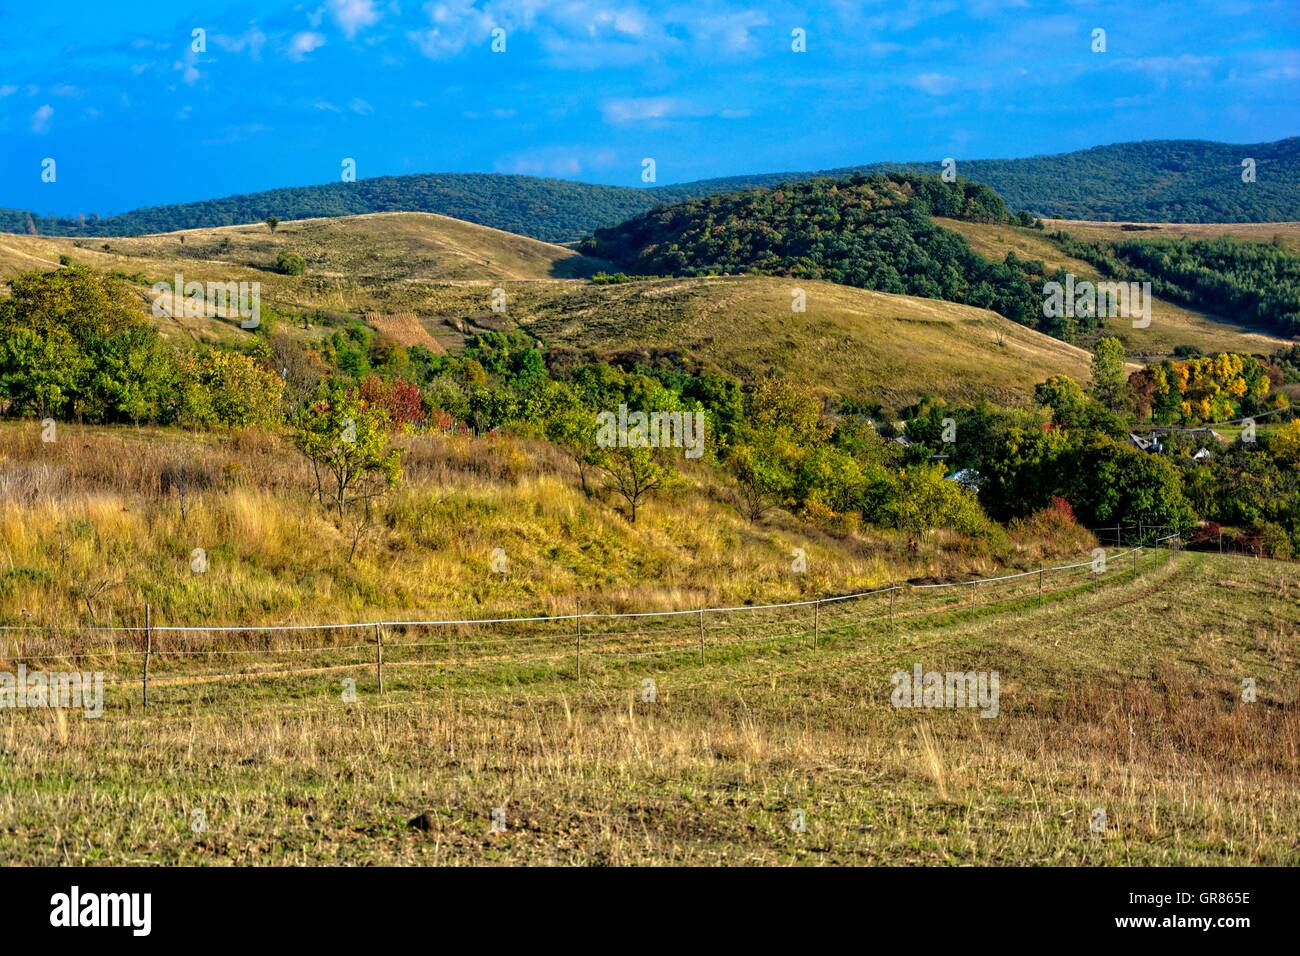 Hilly Landscape As An Aesthetic Wholeness - Stock Image